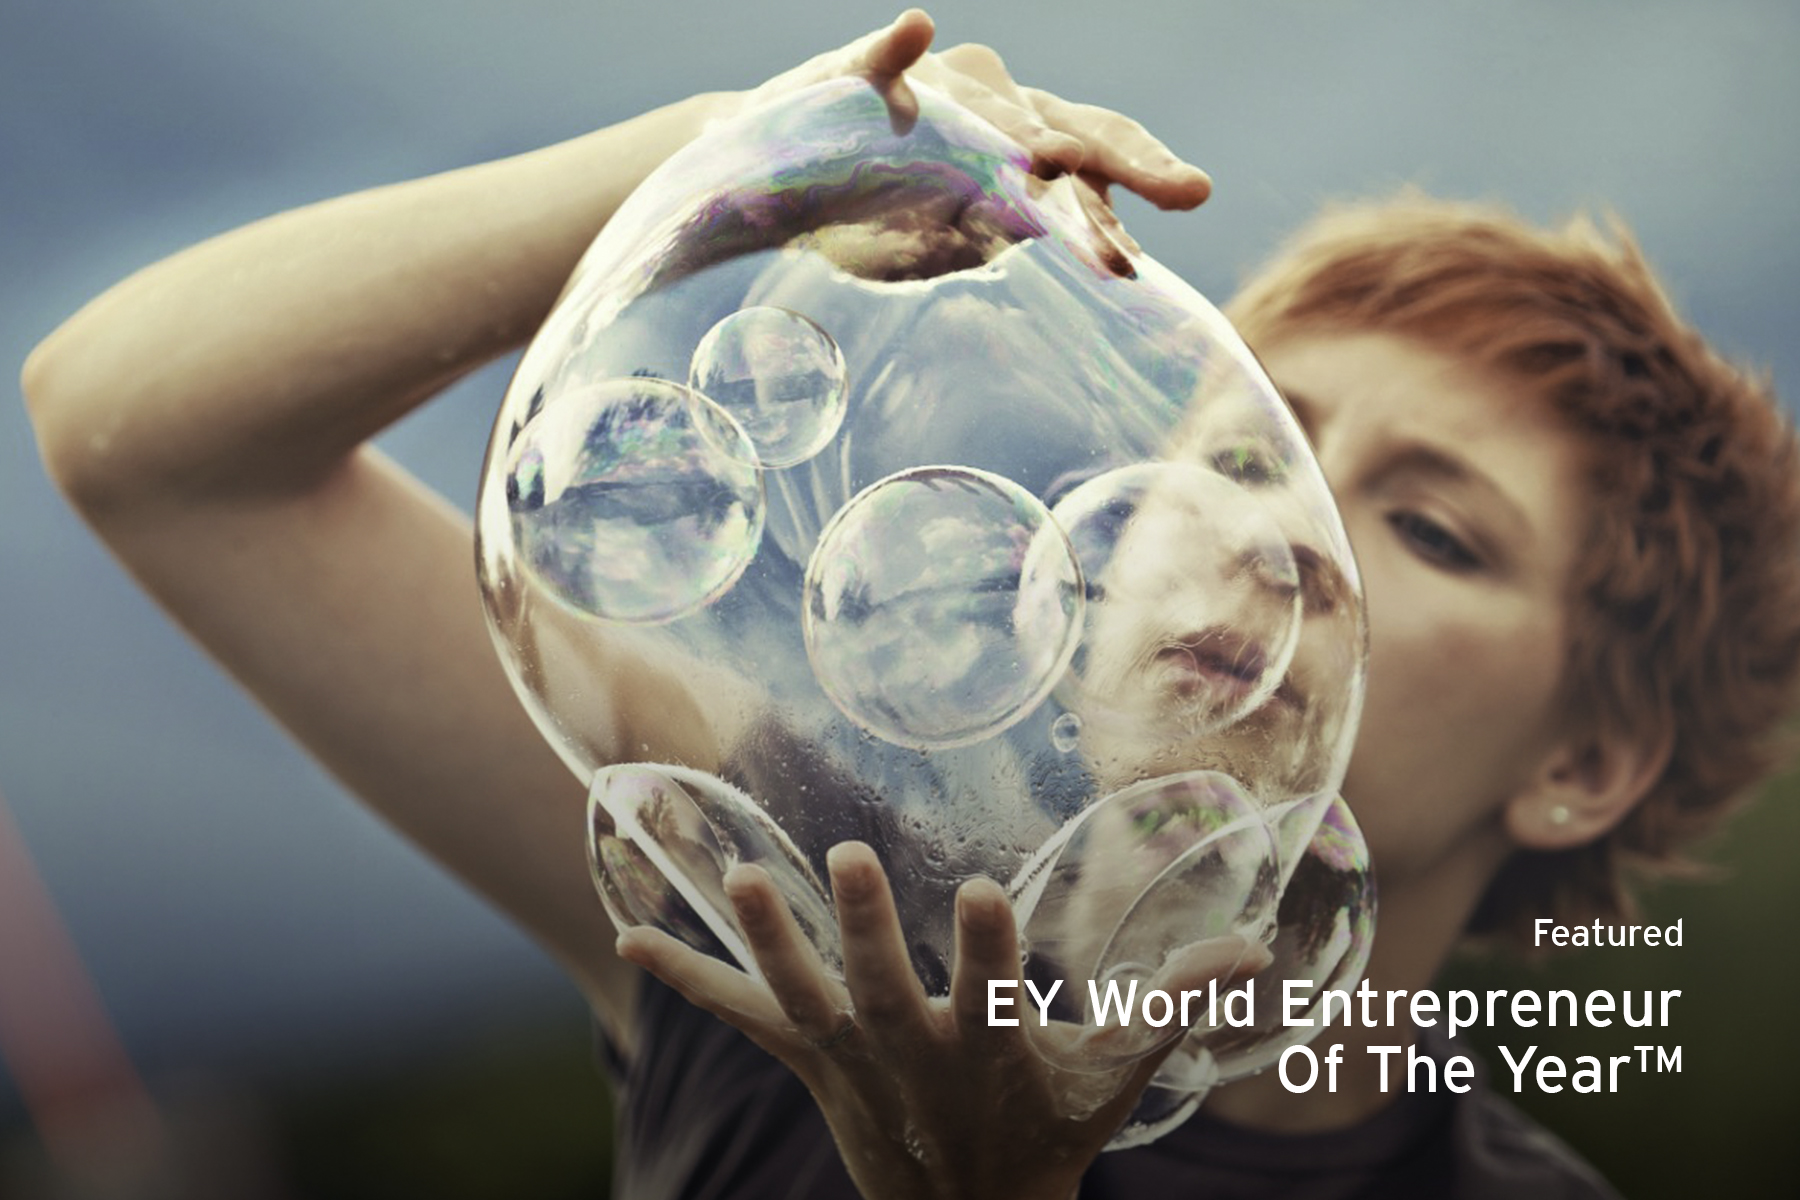 EY World Entrepreneur Of The Year